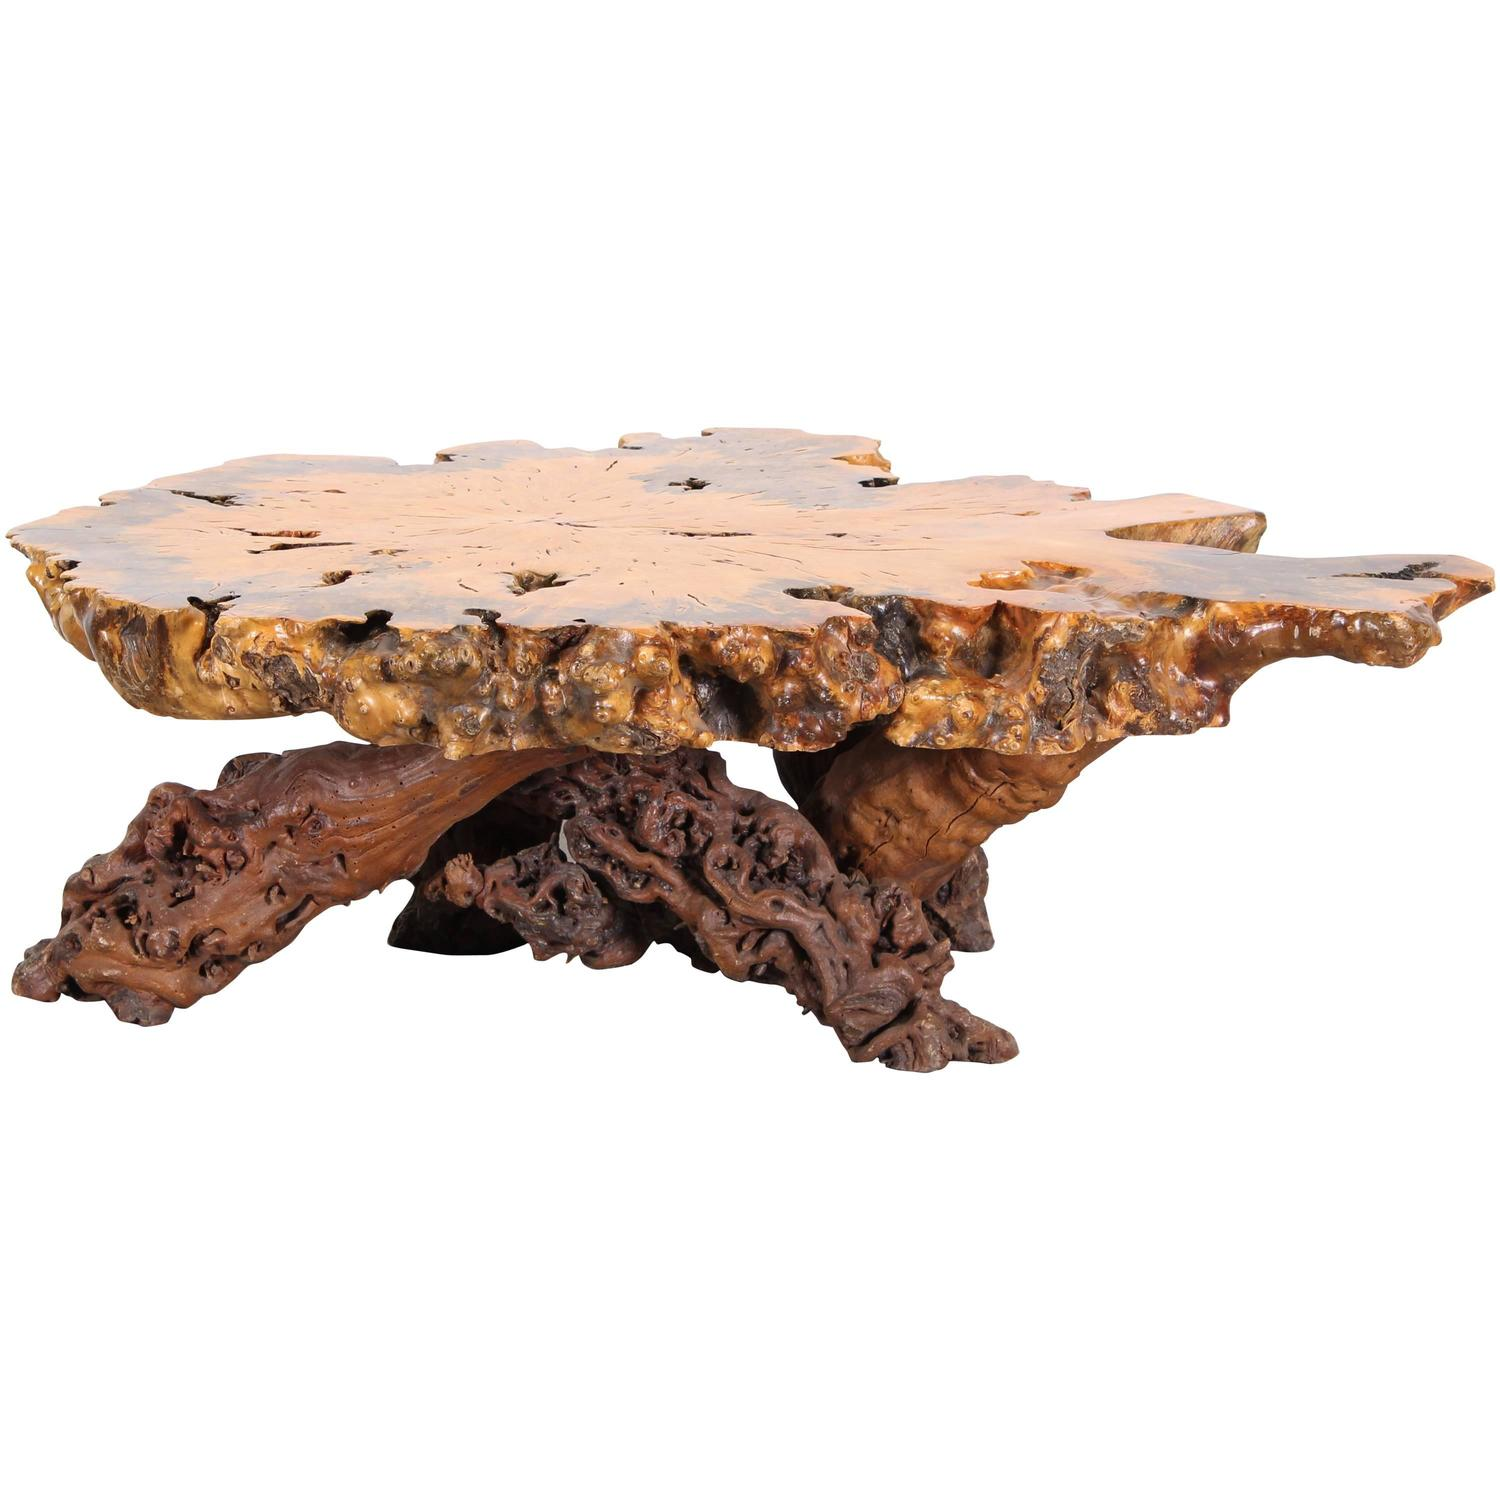 Burl wood nakashima style maple slab coffee table 1970s at 1stdibs